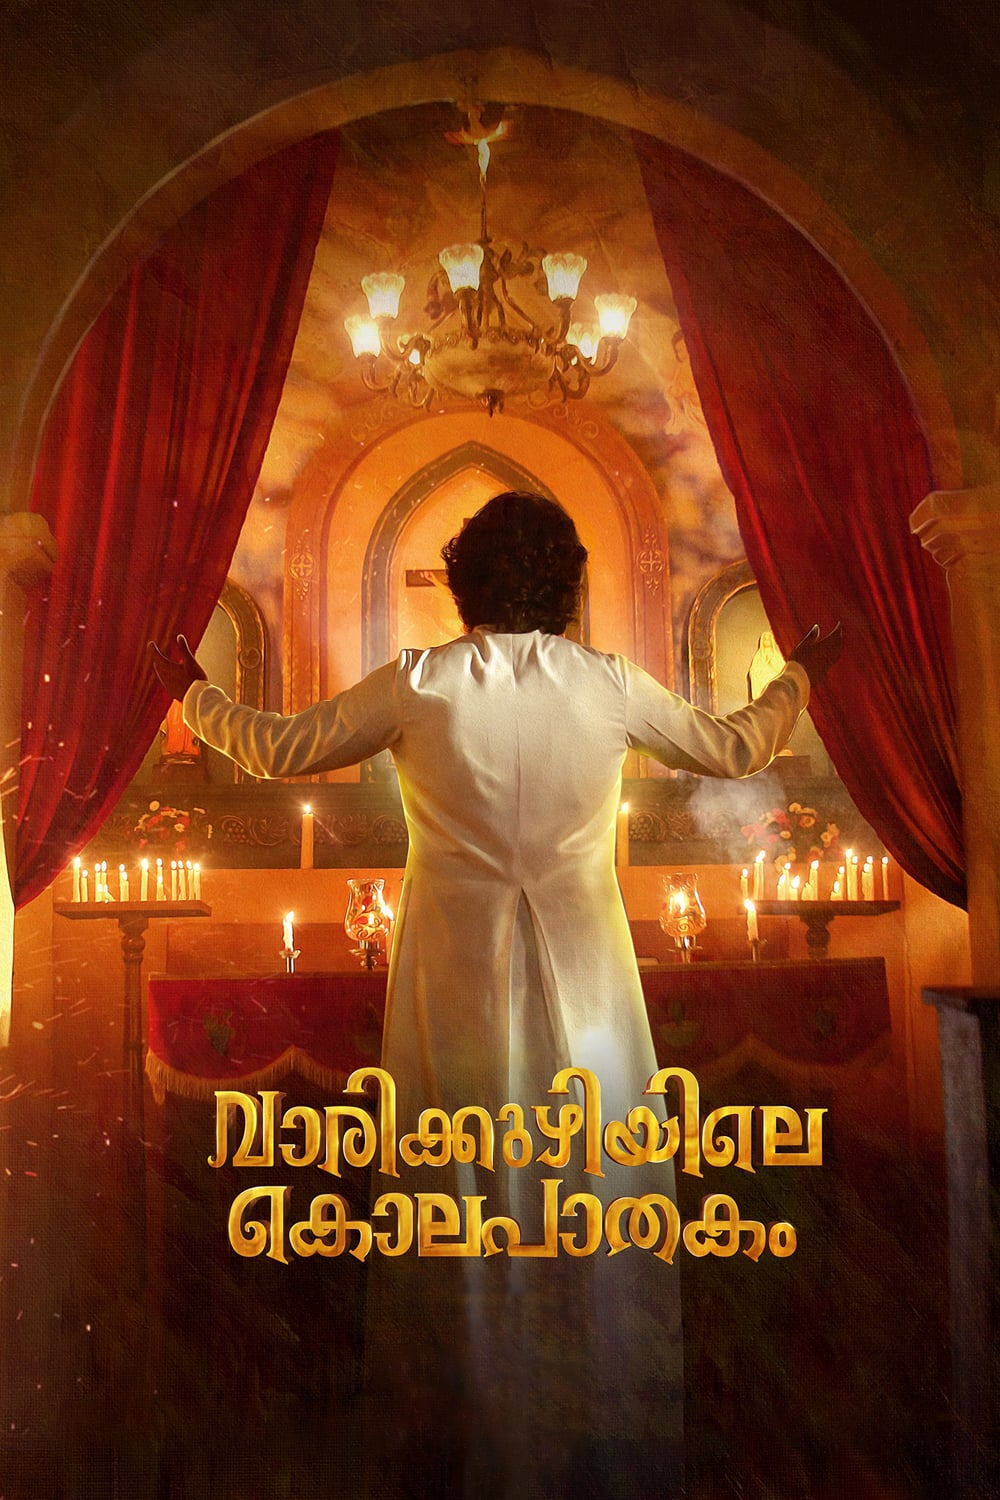 Vaarikkuzhiyile Kolapathakam Movie Streaming Online Watch on Amazon